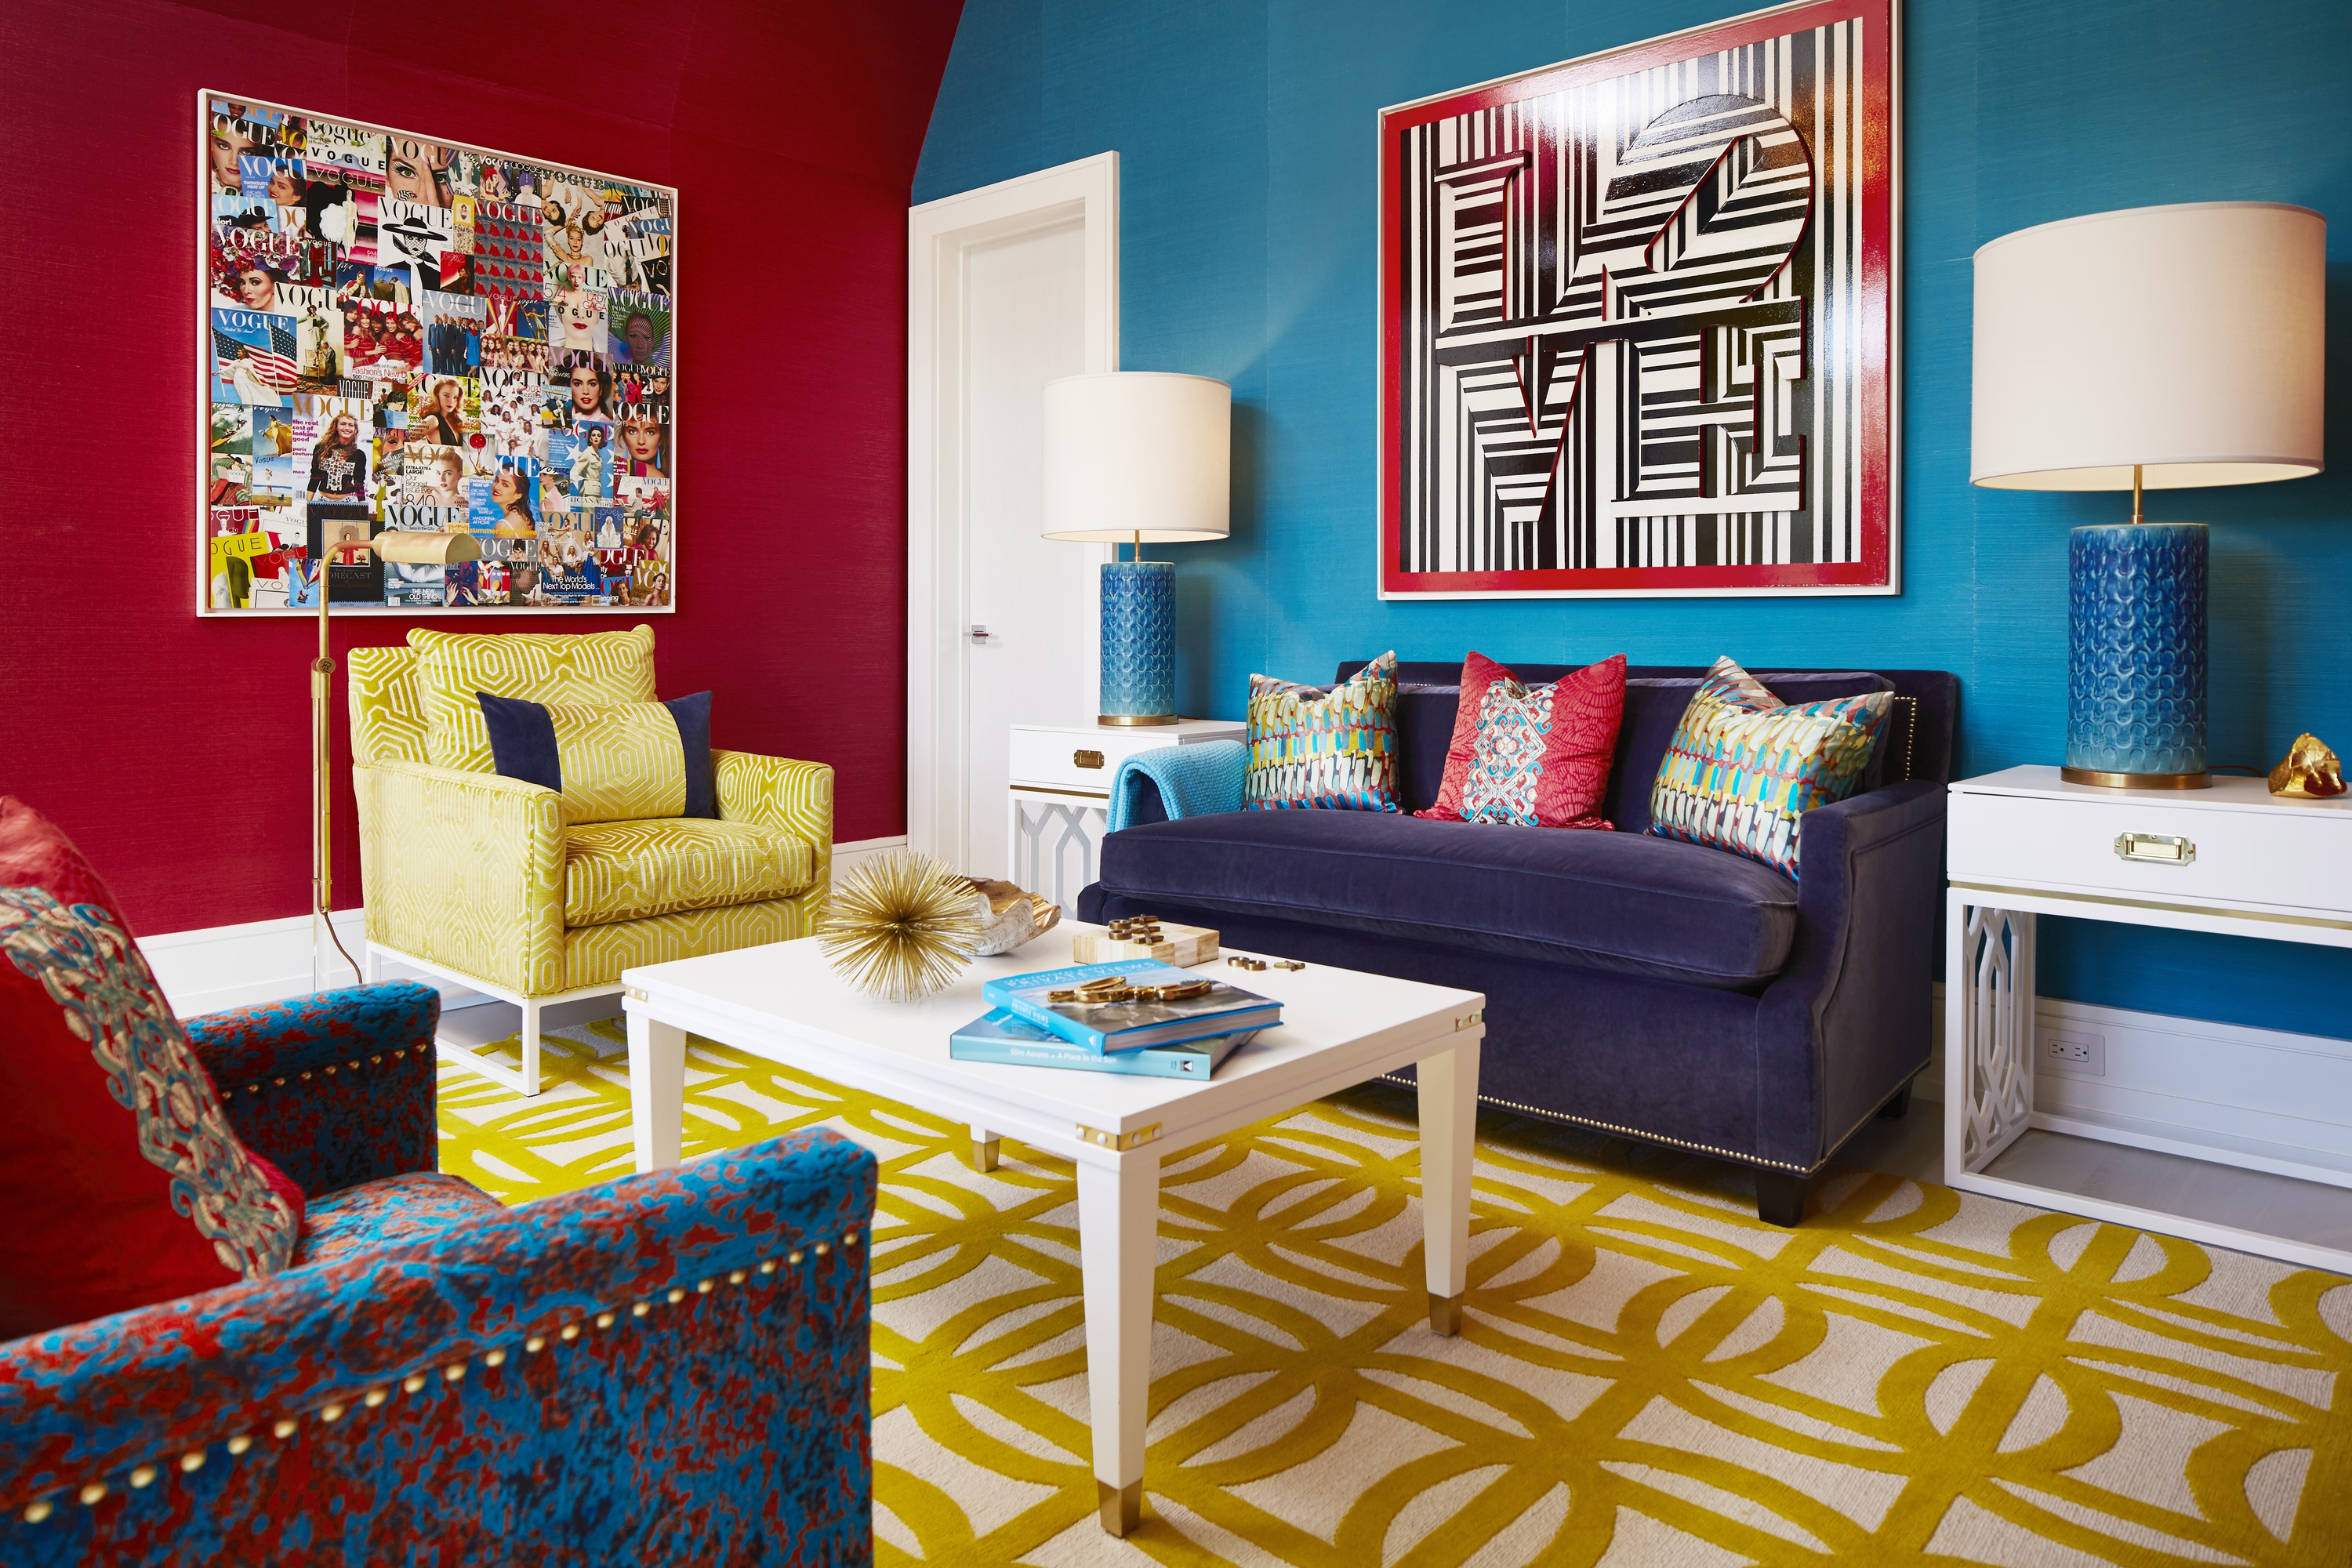 In the home's only truly exuberant dive into color, the upstairs sitting room is awash in vibrant blocks of blue, red and yellow, not to mention a myriad of similarly-hued patterns.